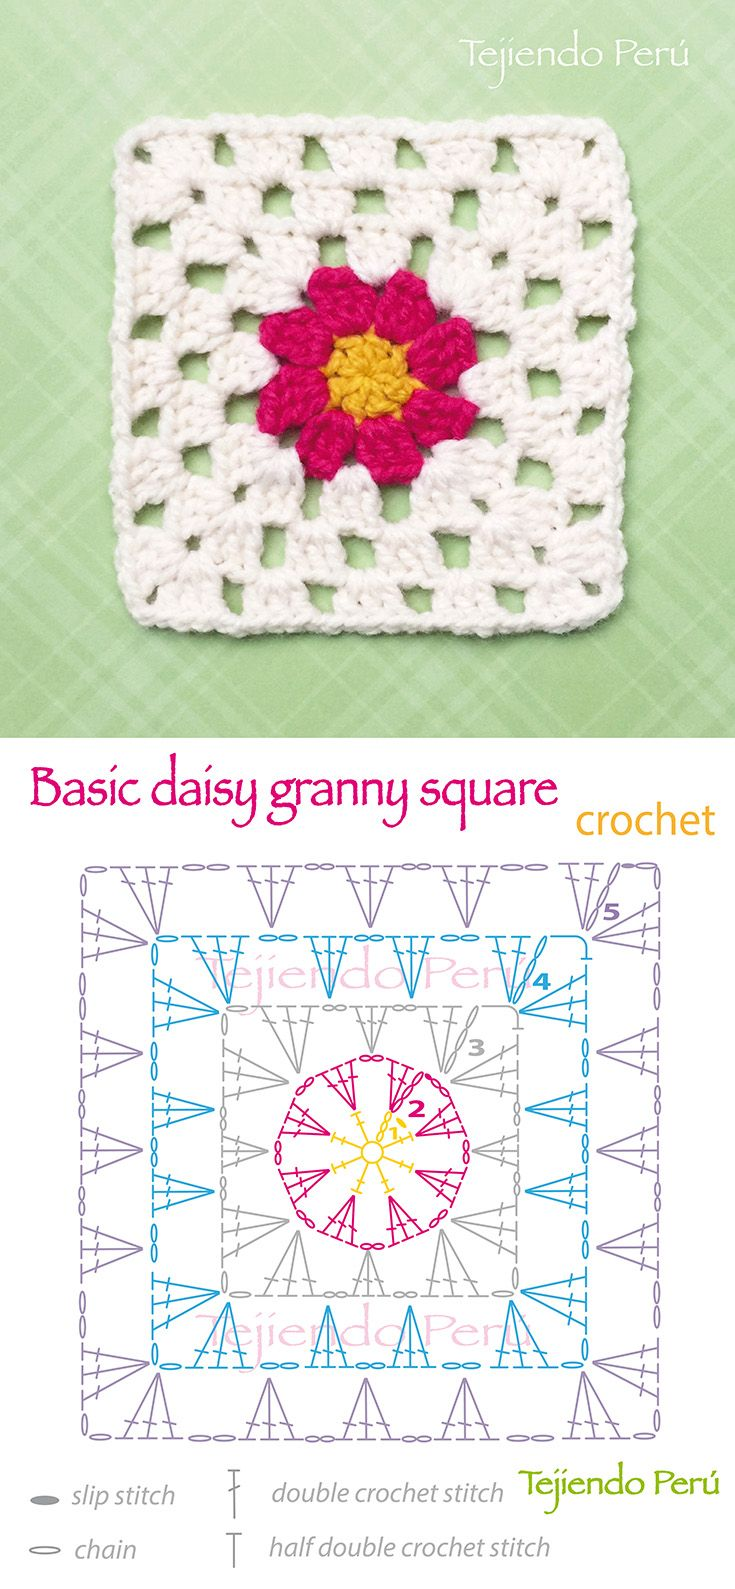 Crochet daisy pattern free diagram diy wiring diagrams crochet basic daisy granny square pattern diagram or chart rh pinterest com crochet flower patterns free printable crochet flower patterns free only ccuart Choice Image